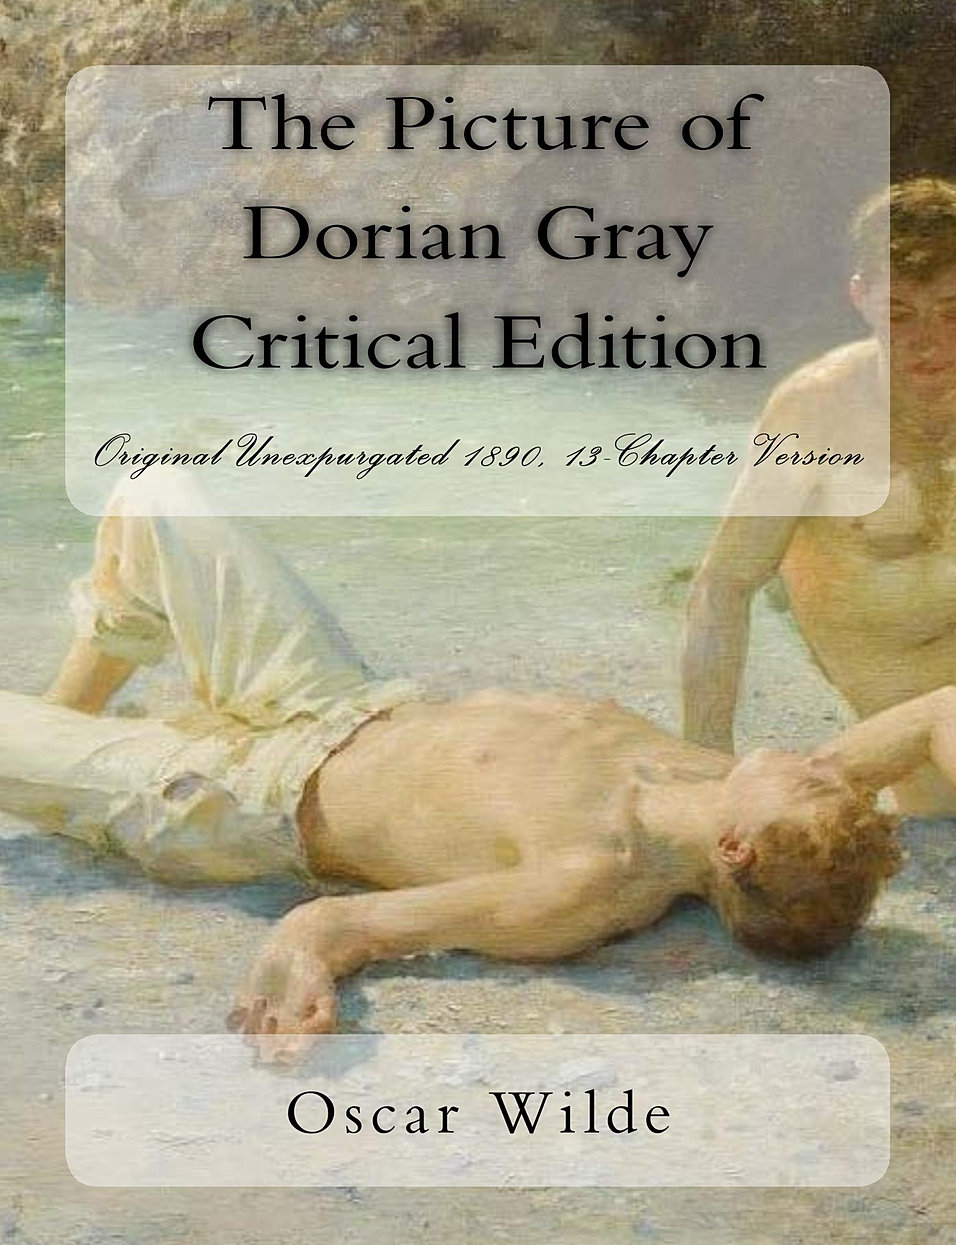 homoeroticism and sexual oppression in the picture of dorian gray essay Published: mon, 5 dec 2016 the picture of dorian gray is called as a masterpiece and the only published novel by oscar wilde, appearing as the lead story in lippincott's monthly magazine on 20 june 1890, printed as the july 1890 issue of this magazine.